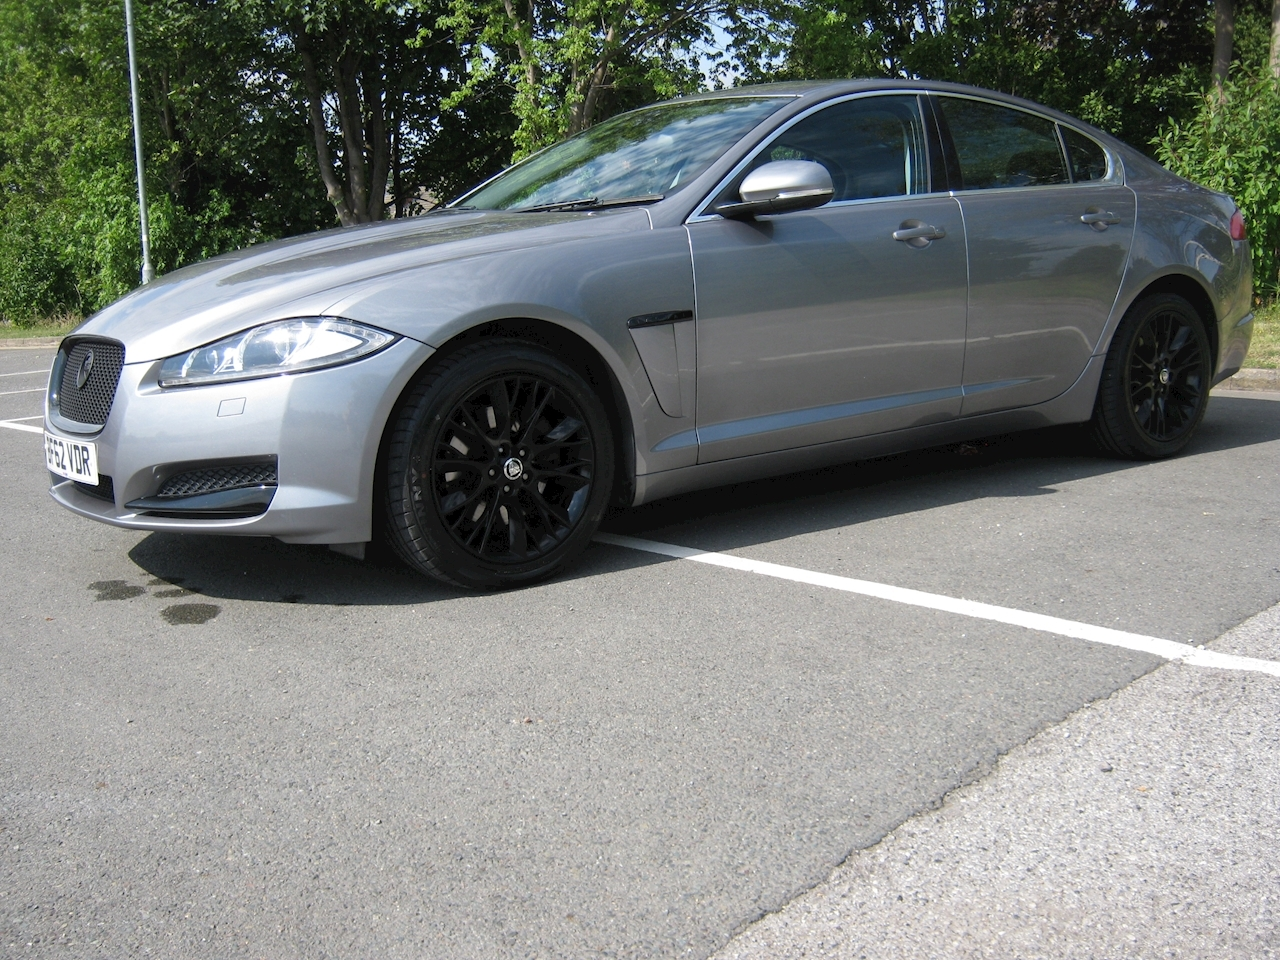 Jaguar XF V6 Luxury 3.0 4dr Saloon Automatic Diesel